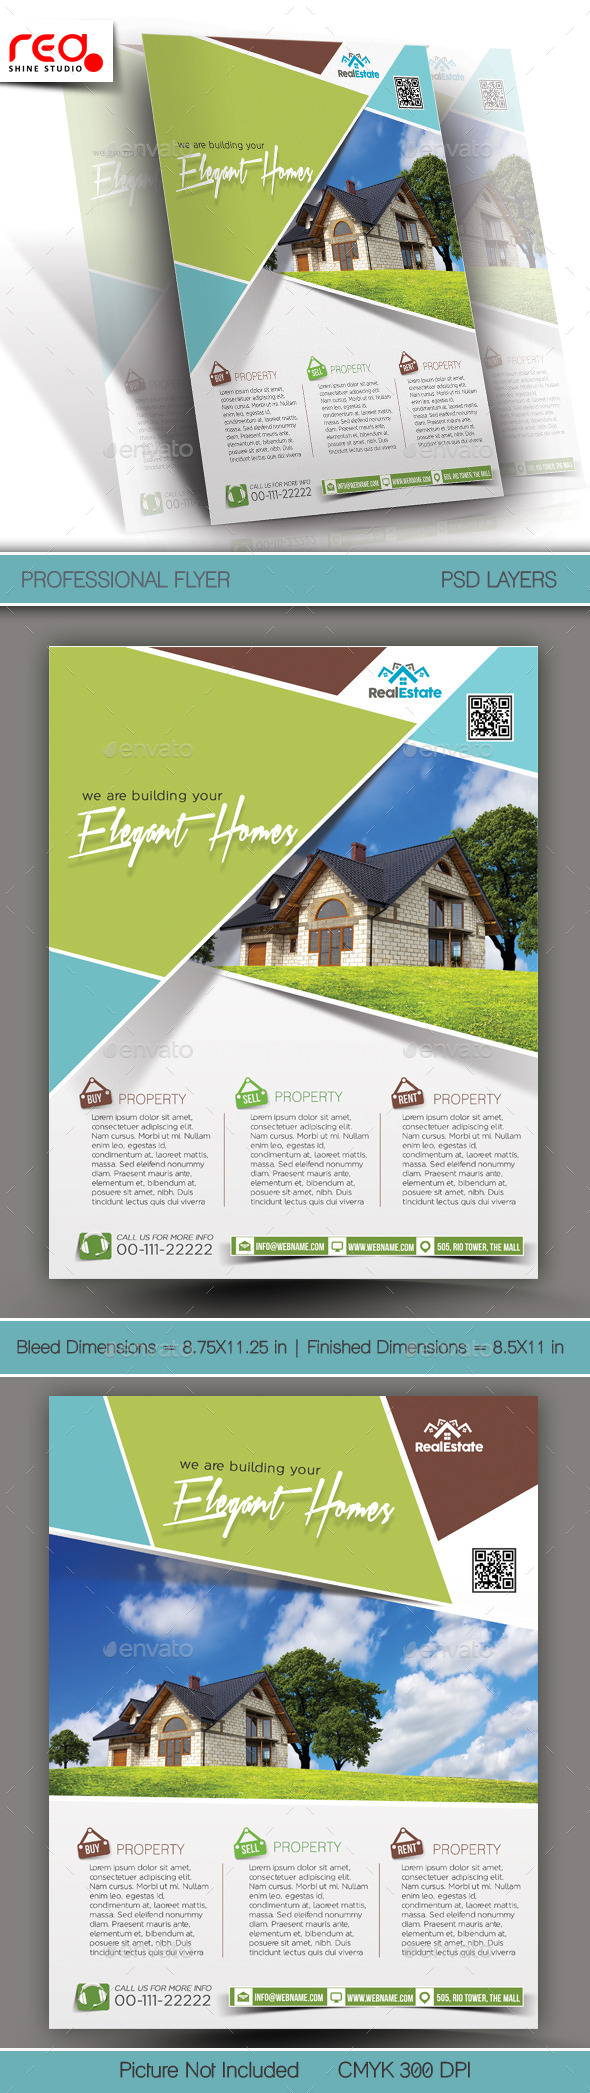 Real Estate Multipurpose Flyer Template